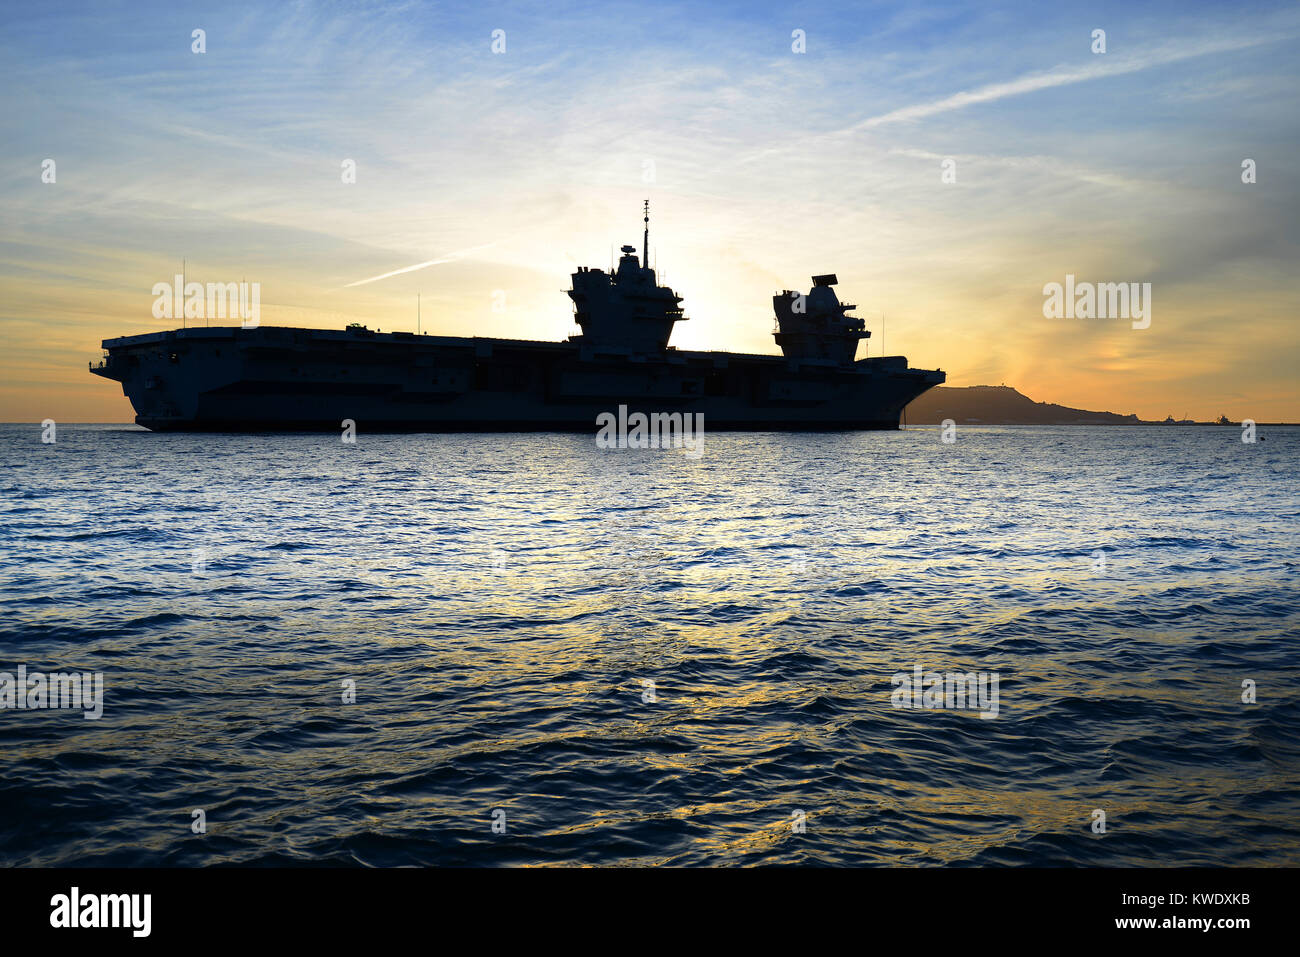 The Royal Navy aircraft carrier HMS Queen Elizabeth arrives at sunset at Portland, Dorset, on the Jurassic Coast - Stock Image